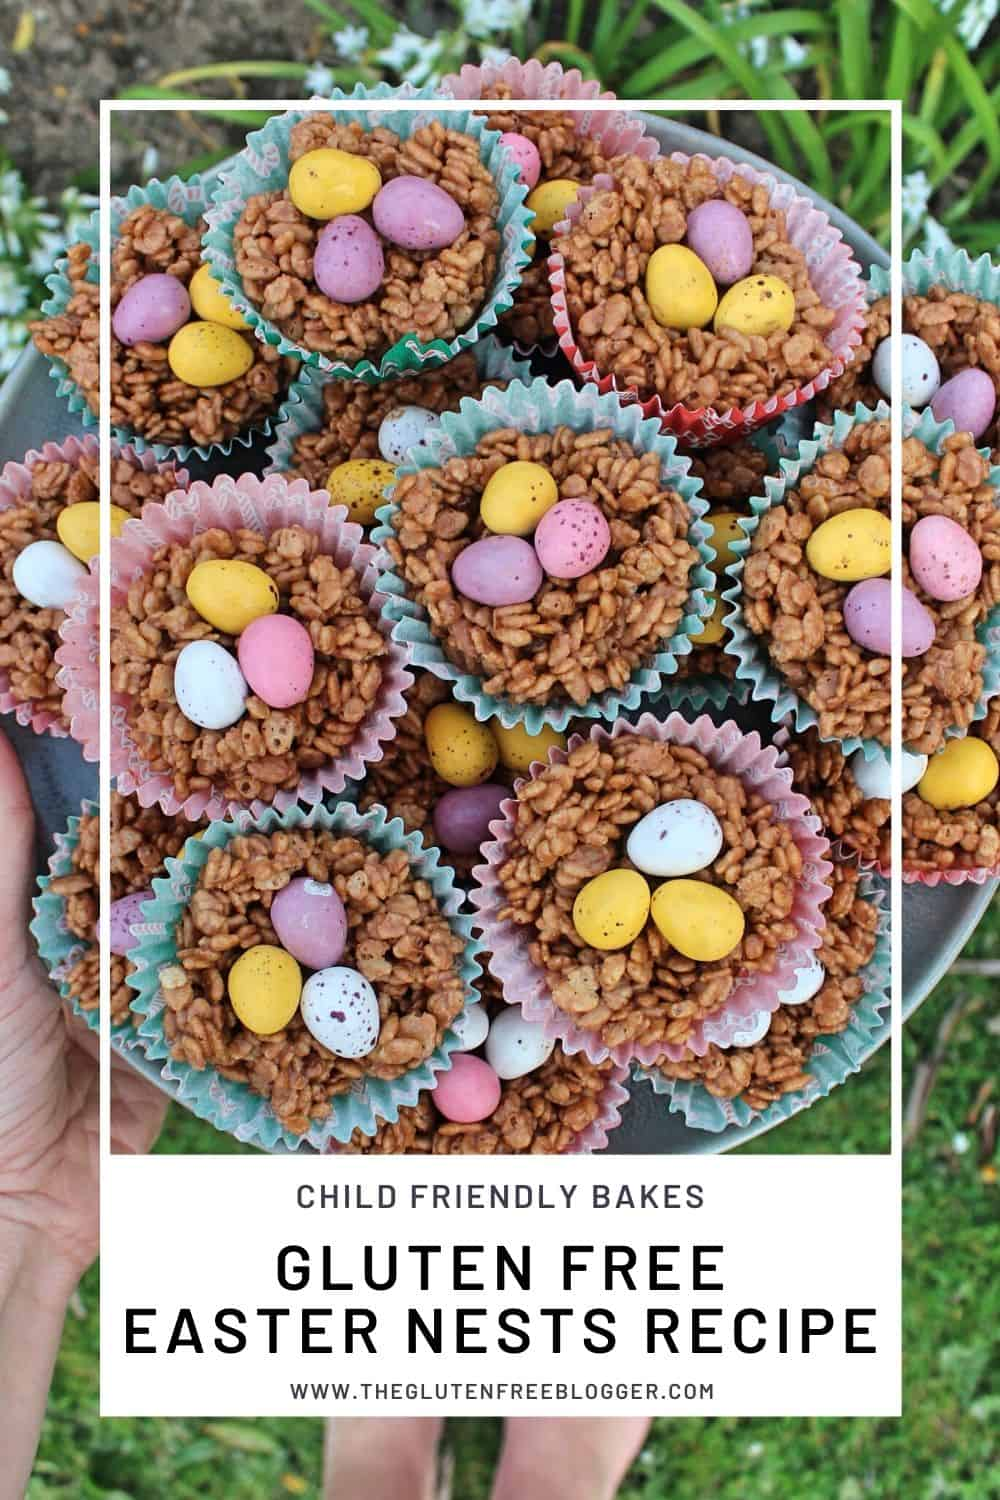 gluten free easter nests recipe easy child friendly no bake recipes (1)